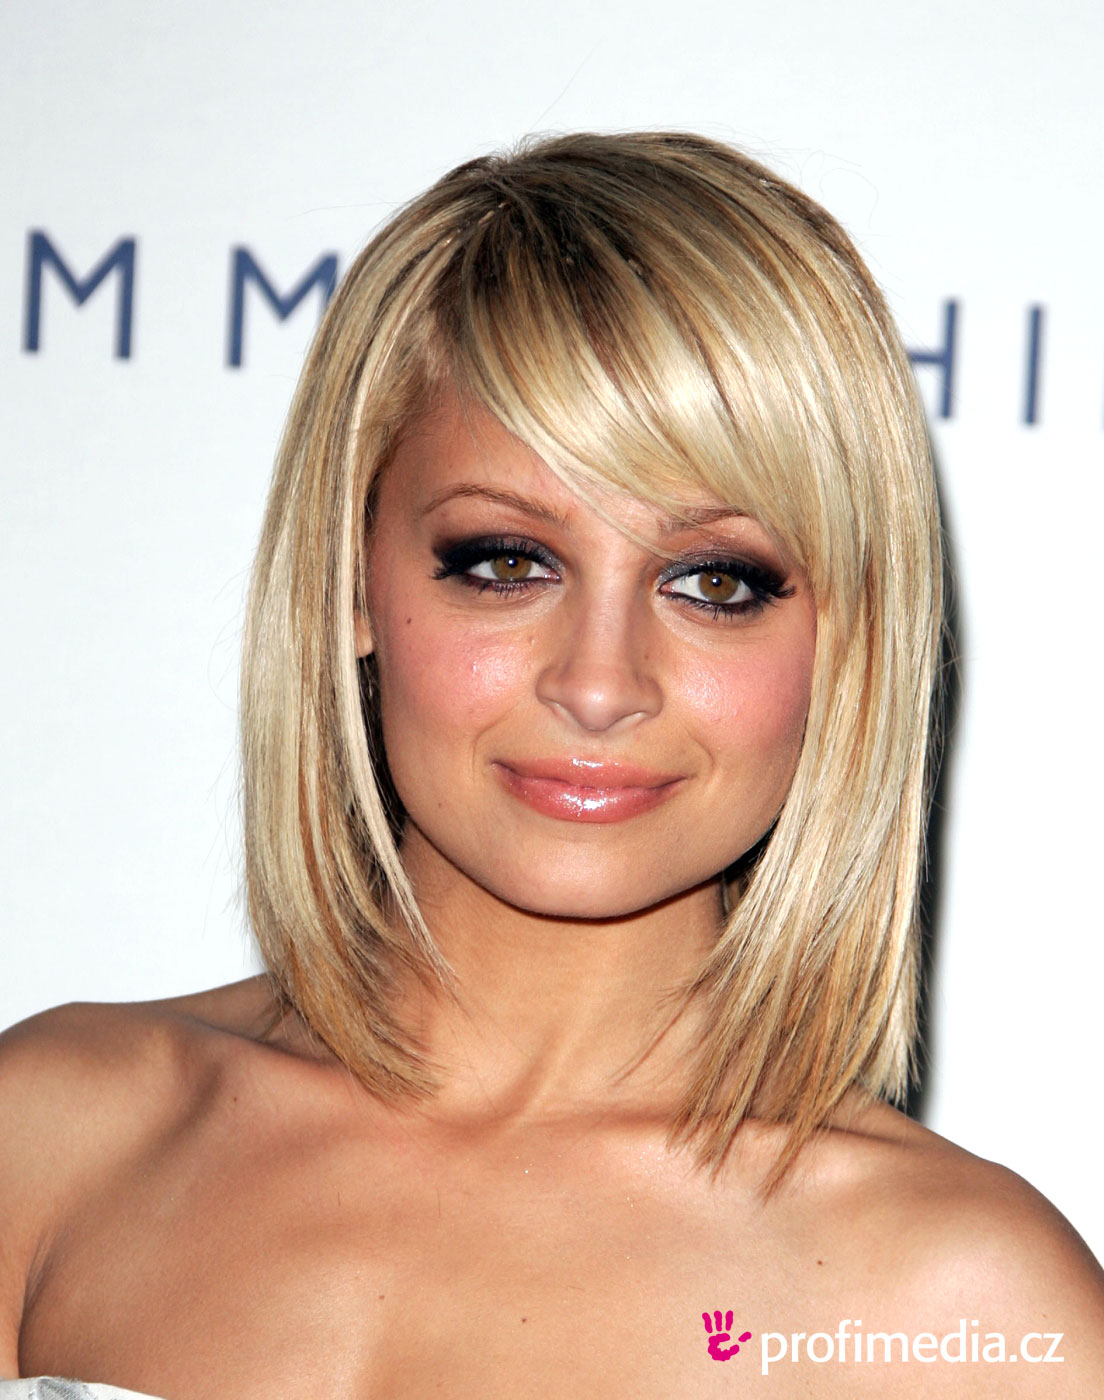 nicole richie frisur zum ausprobieren in efrisuren. Black Bedroom Furniture Sets. Home Design Ideas